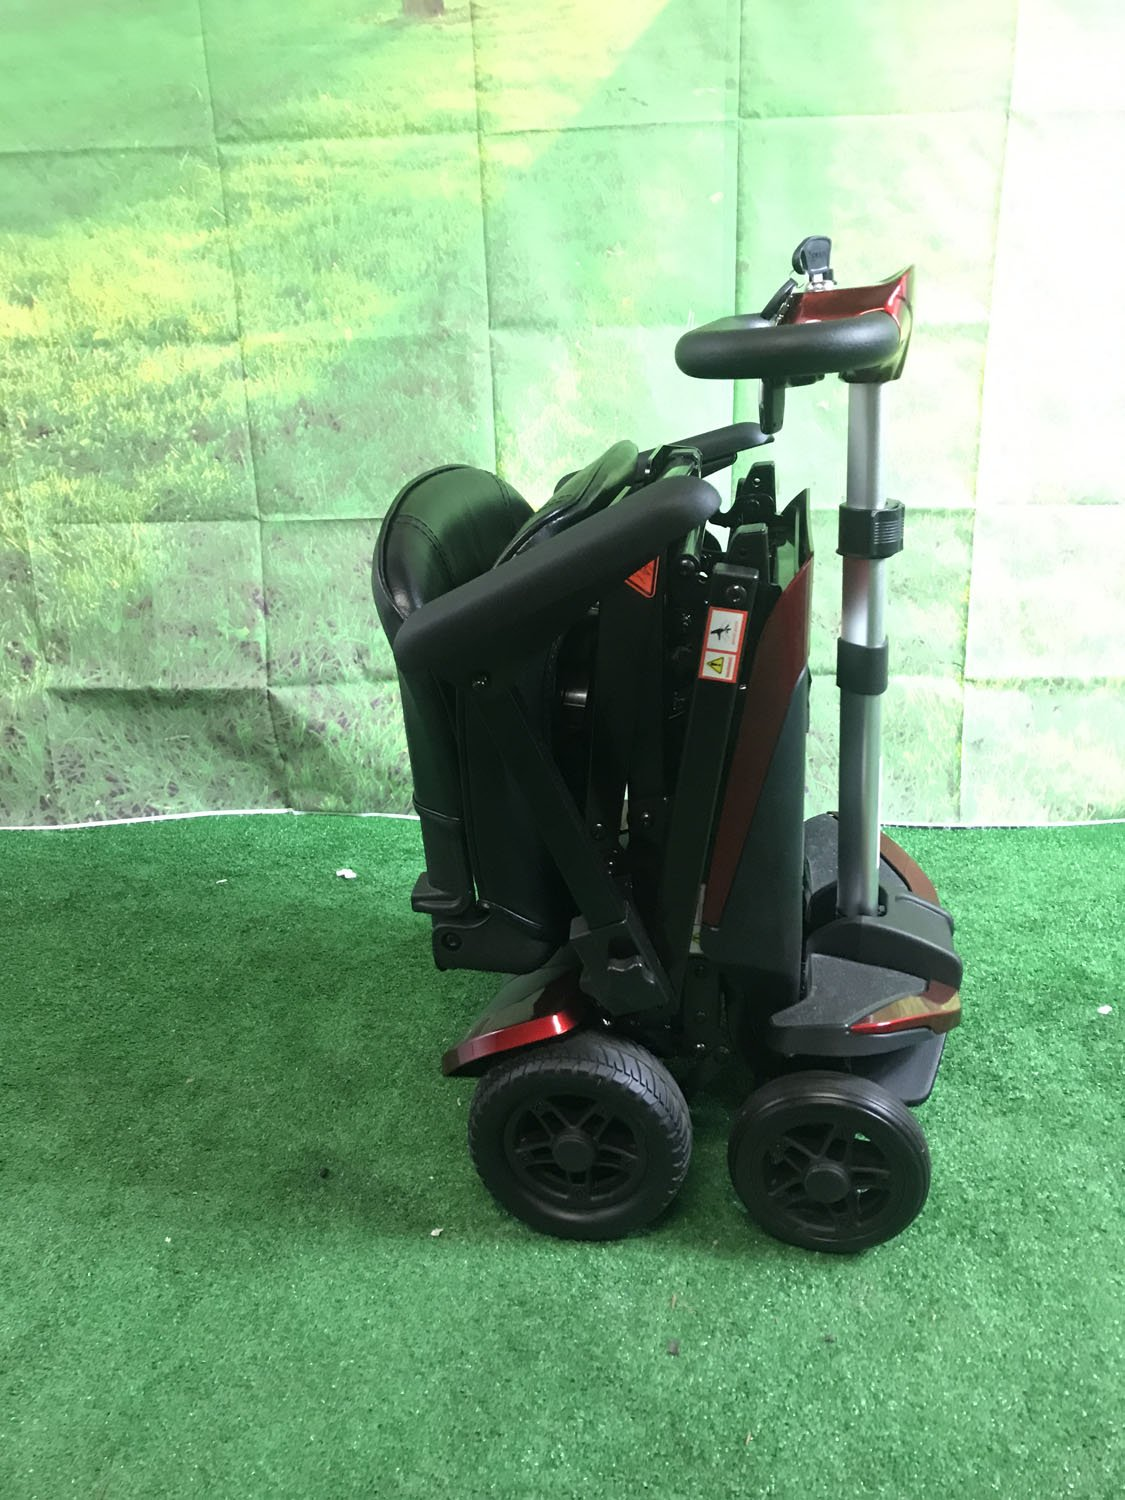 Amazon.com: Plegable Scooter Color: Rojo: Health & Personal Care